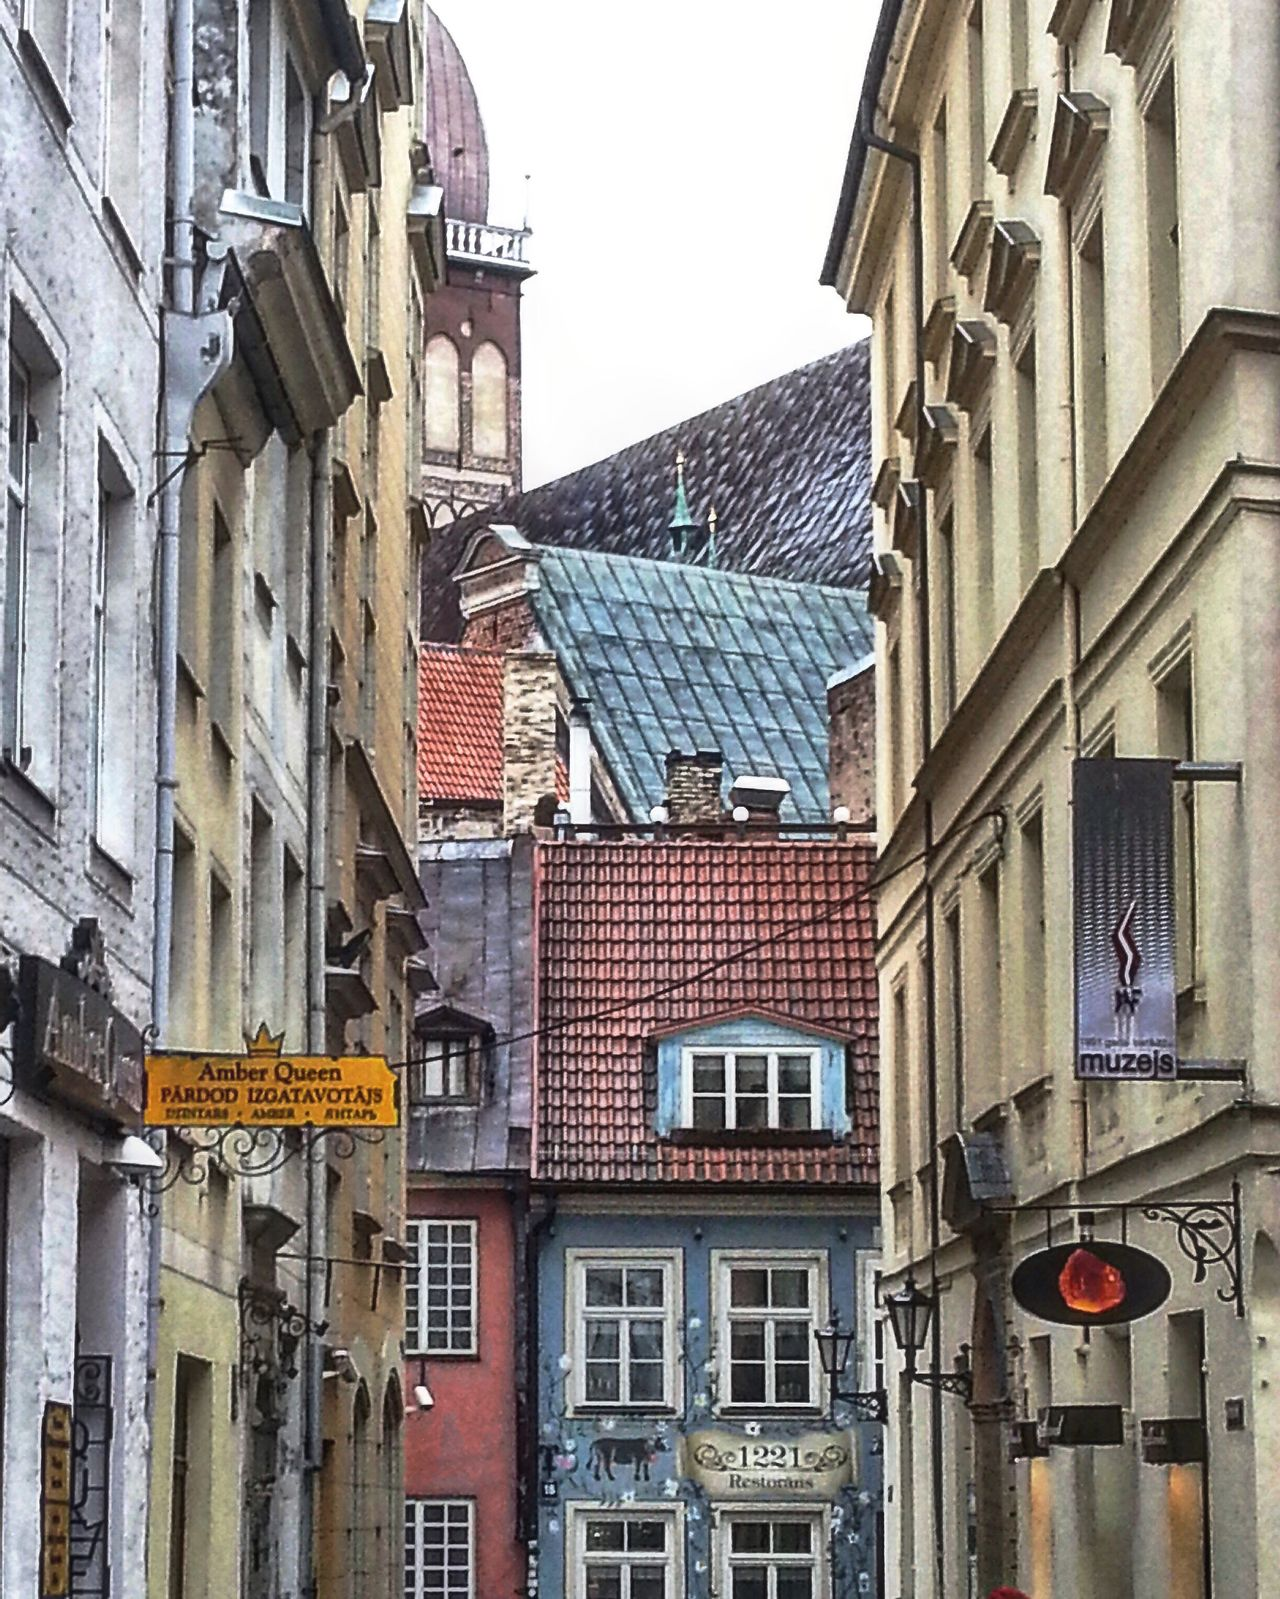 Lithuania Architecture Architecture_collection Architectural Detail Architecturelovers Architectureporn Building Roof Rooftops Sky Old Latvia Riga Iphoneonly Iphonesia Old Buildings Old-fashioned Old Town